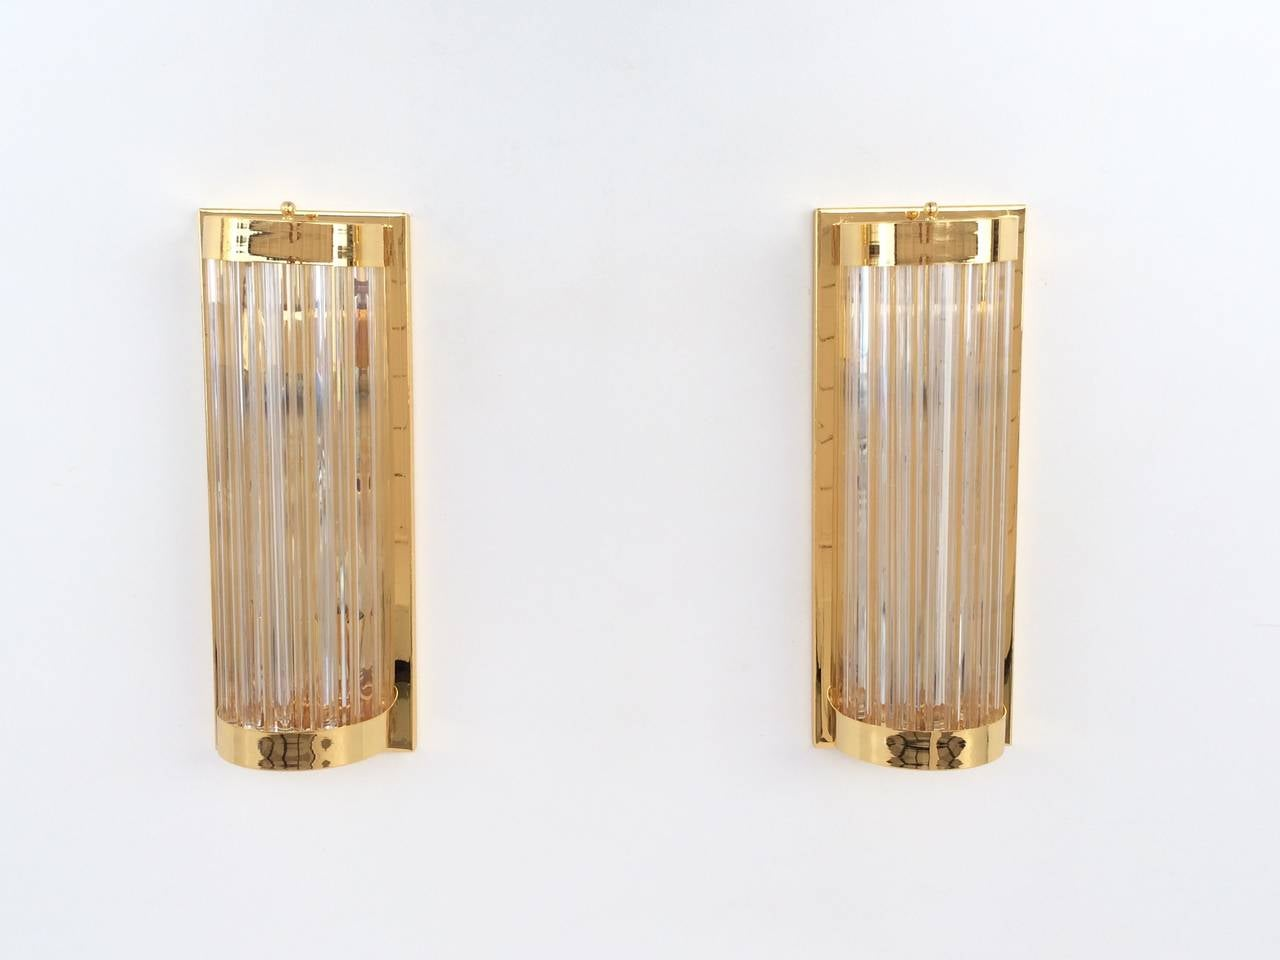 Phenomenal Polished Brass with Murano Glass Rods Wall Sconces by Venini at 1stdibs